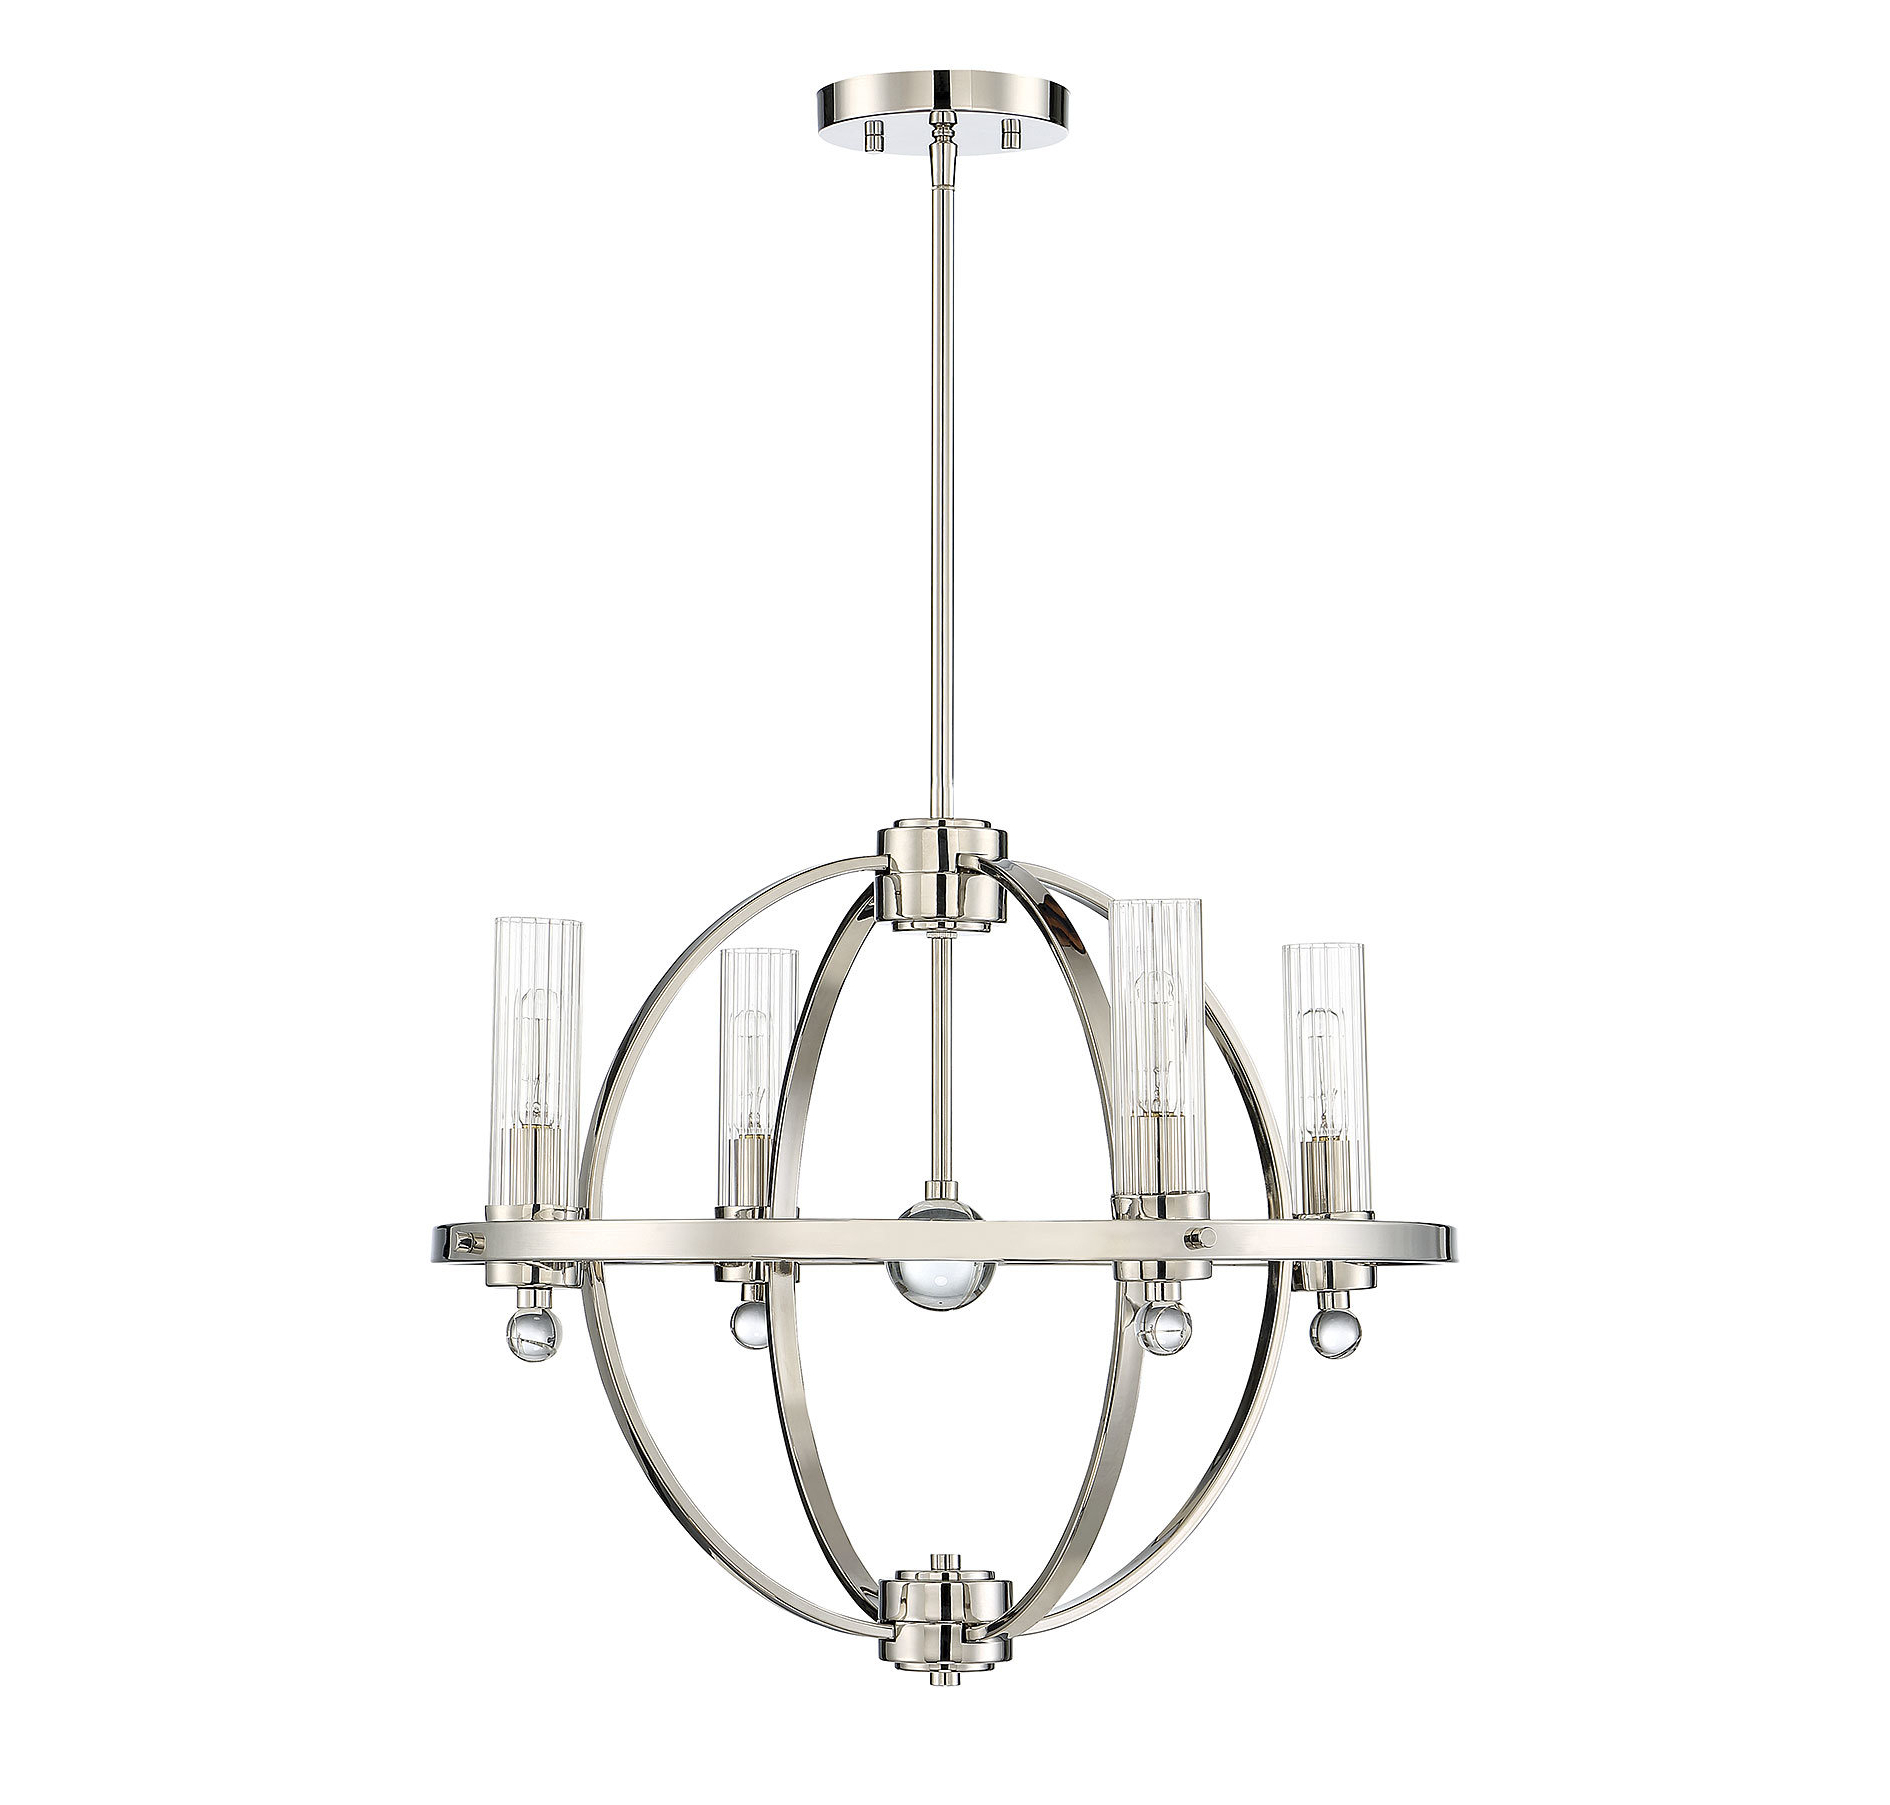 Madrigal 4 Light Globe Chandelier Intended For Most Recent Gregoire 6 Light Globe Chandeliers (View 16 of 20)